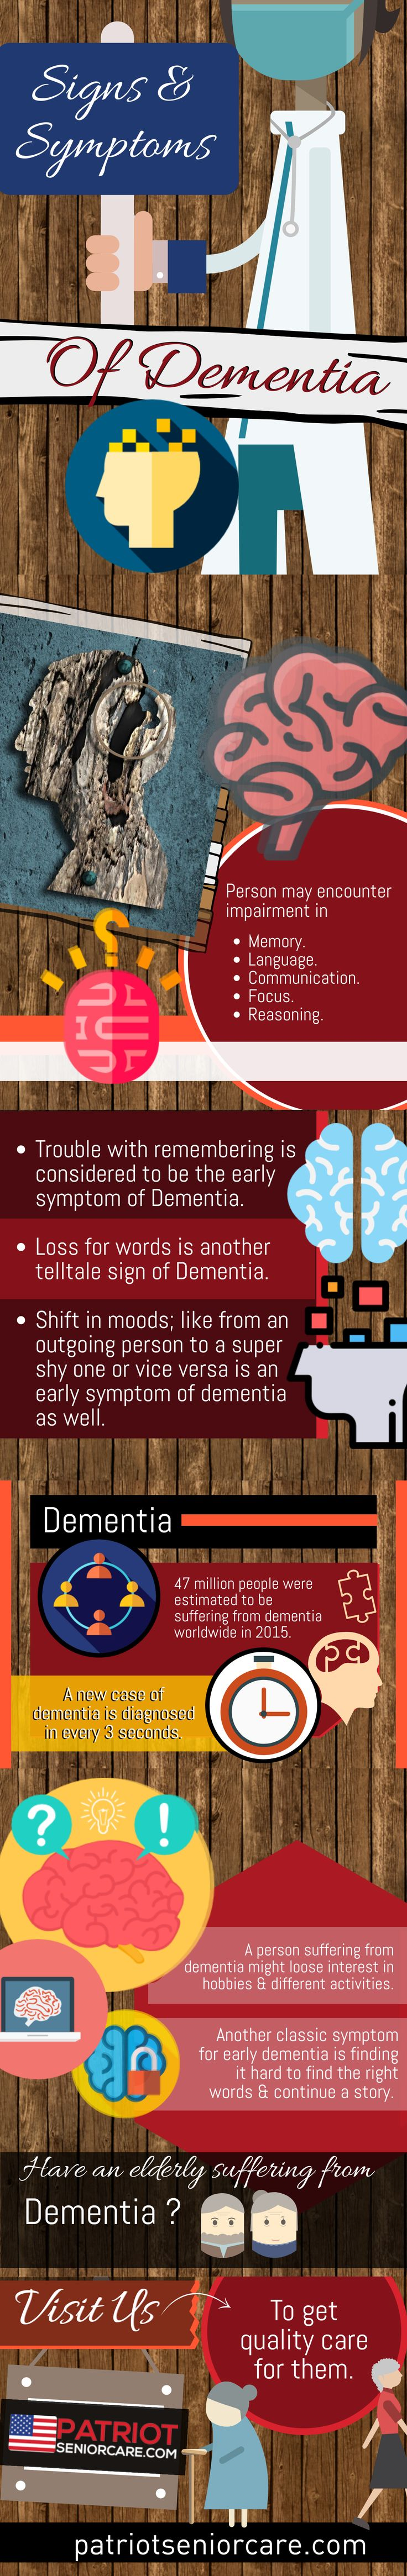 Know about the initial signs and symptoms of Dementia